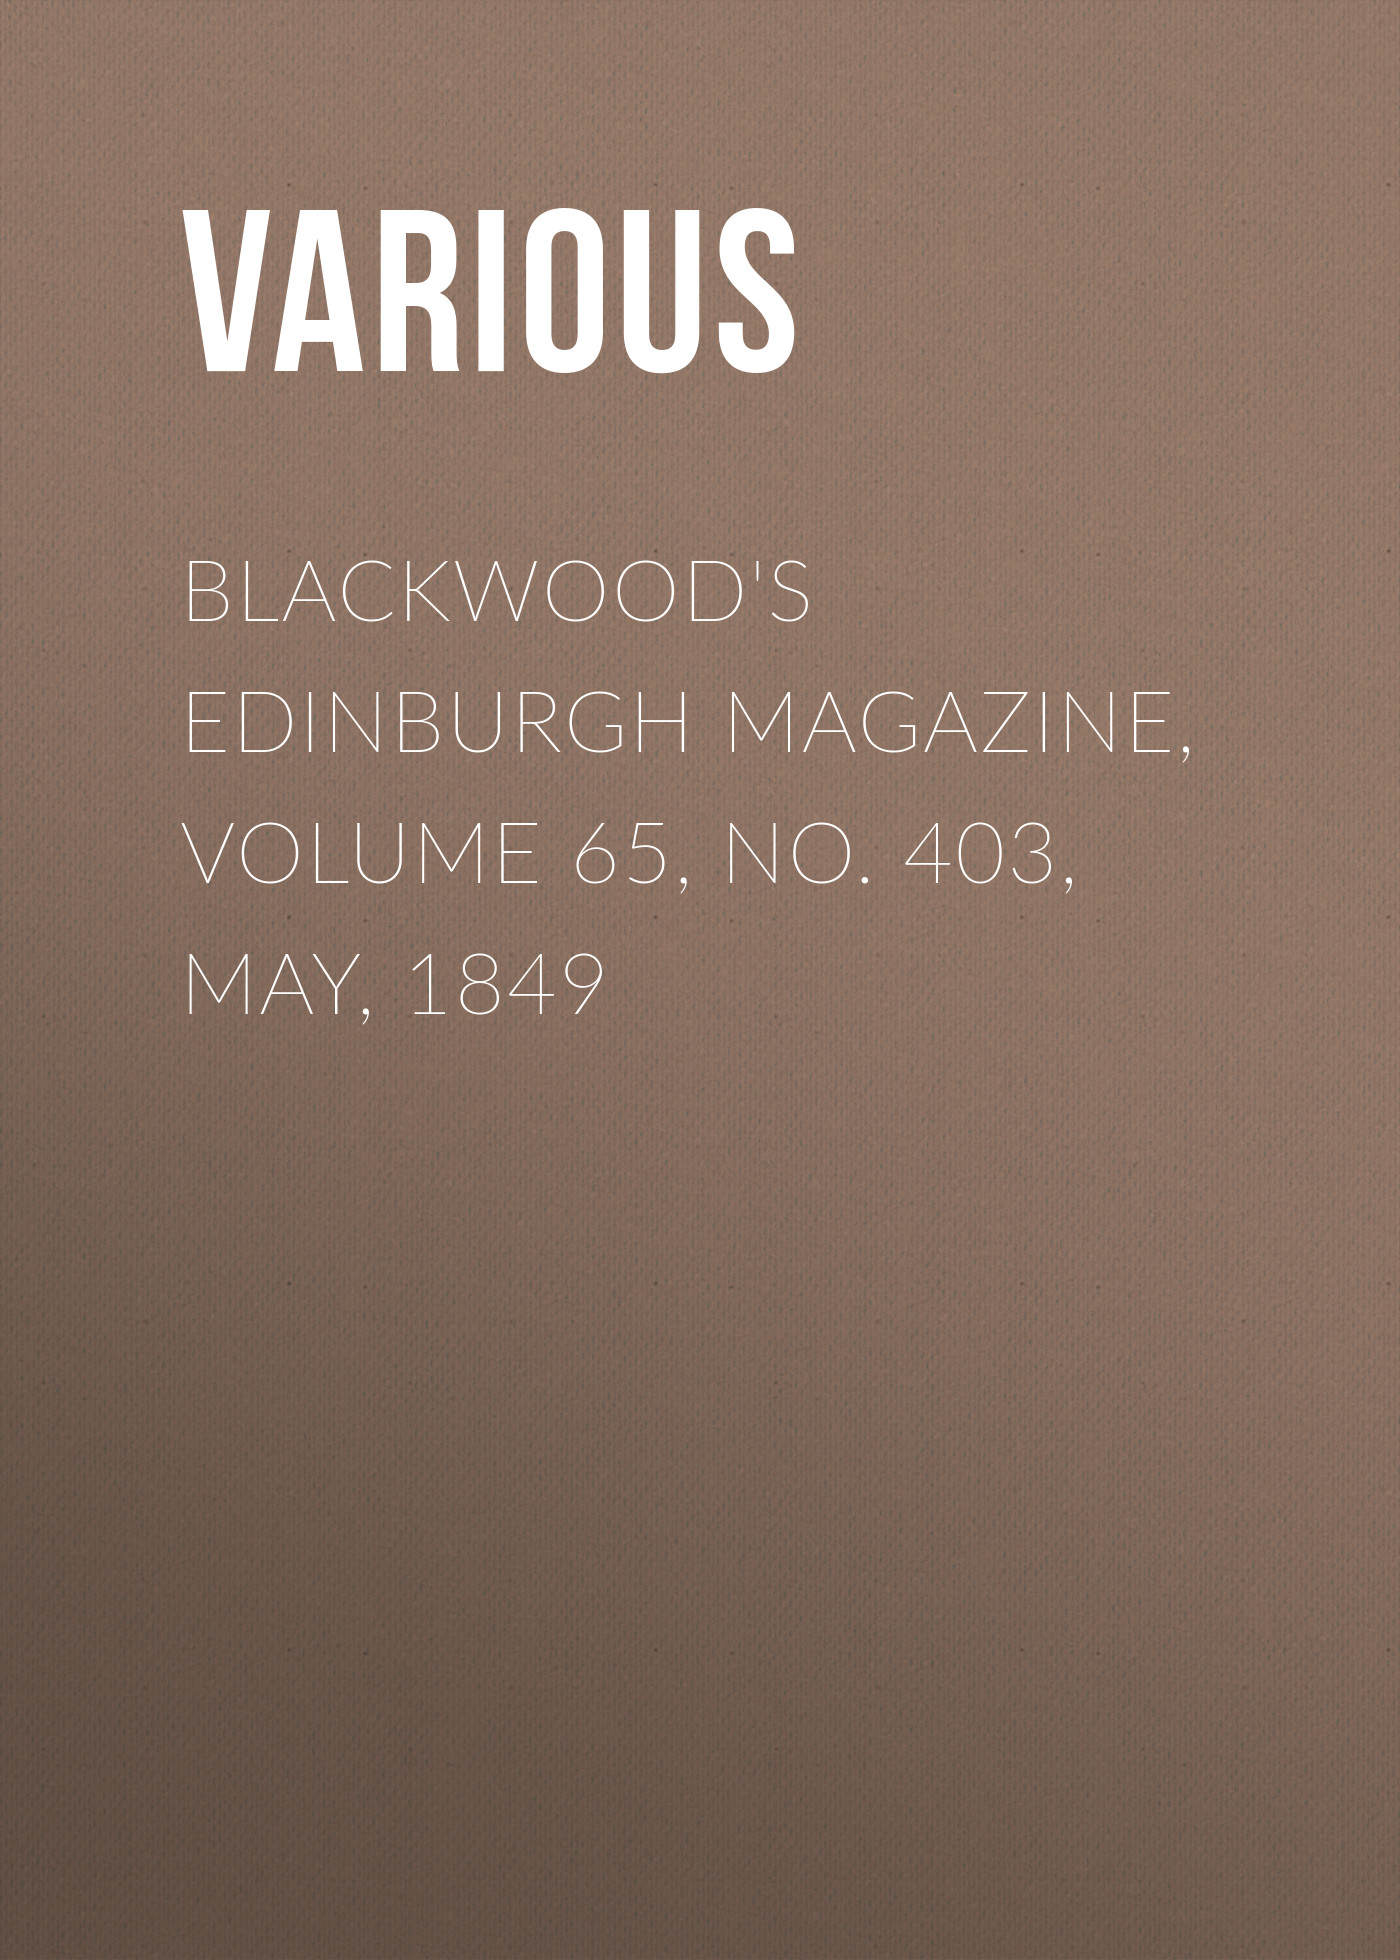 лучшая цена Various Blackwood's Edinburgh Magazine, Volume 65, No. 403, May, 1849